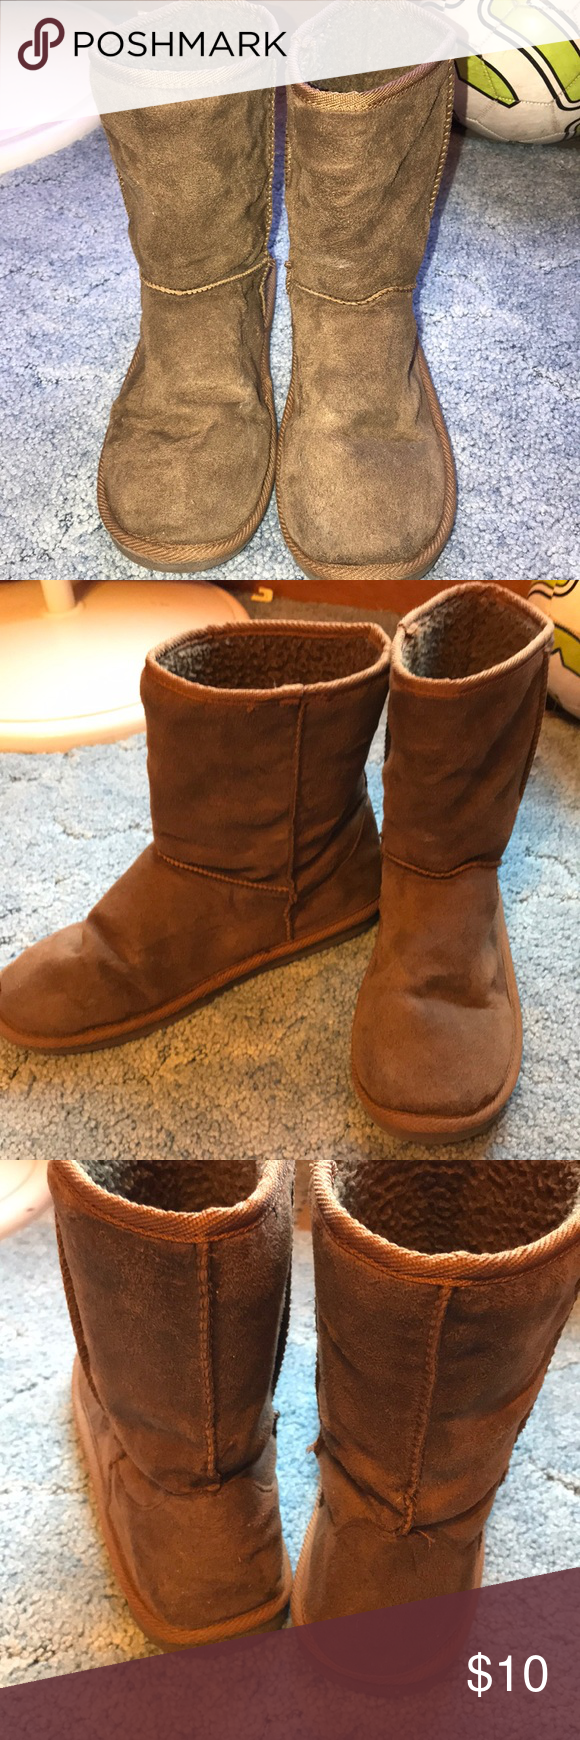 70ff6f31826 Brown imitation ugg boots In perfect condition. Only worn Once or ...